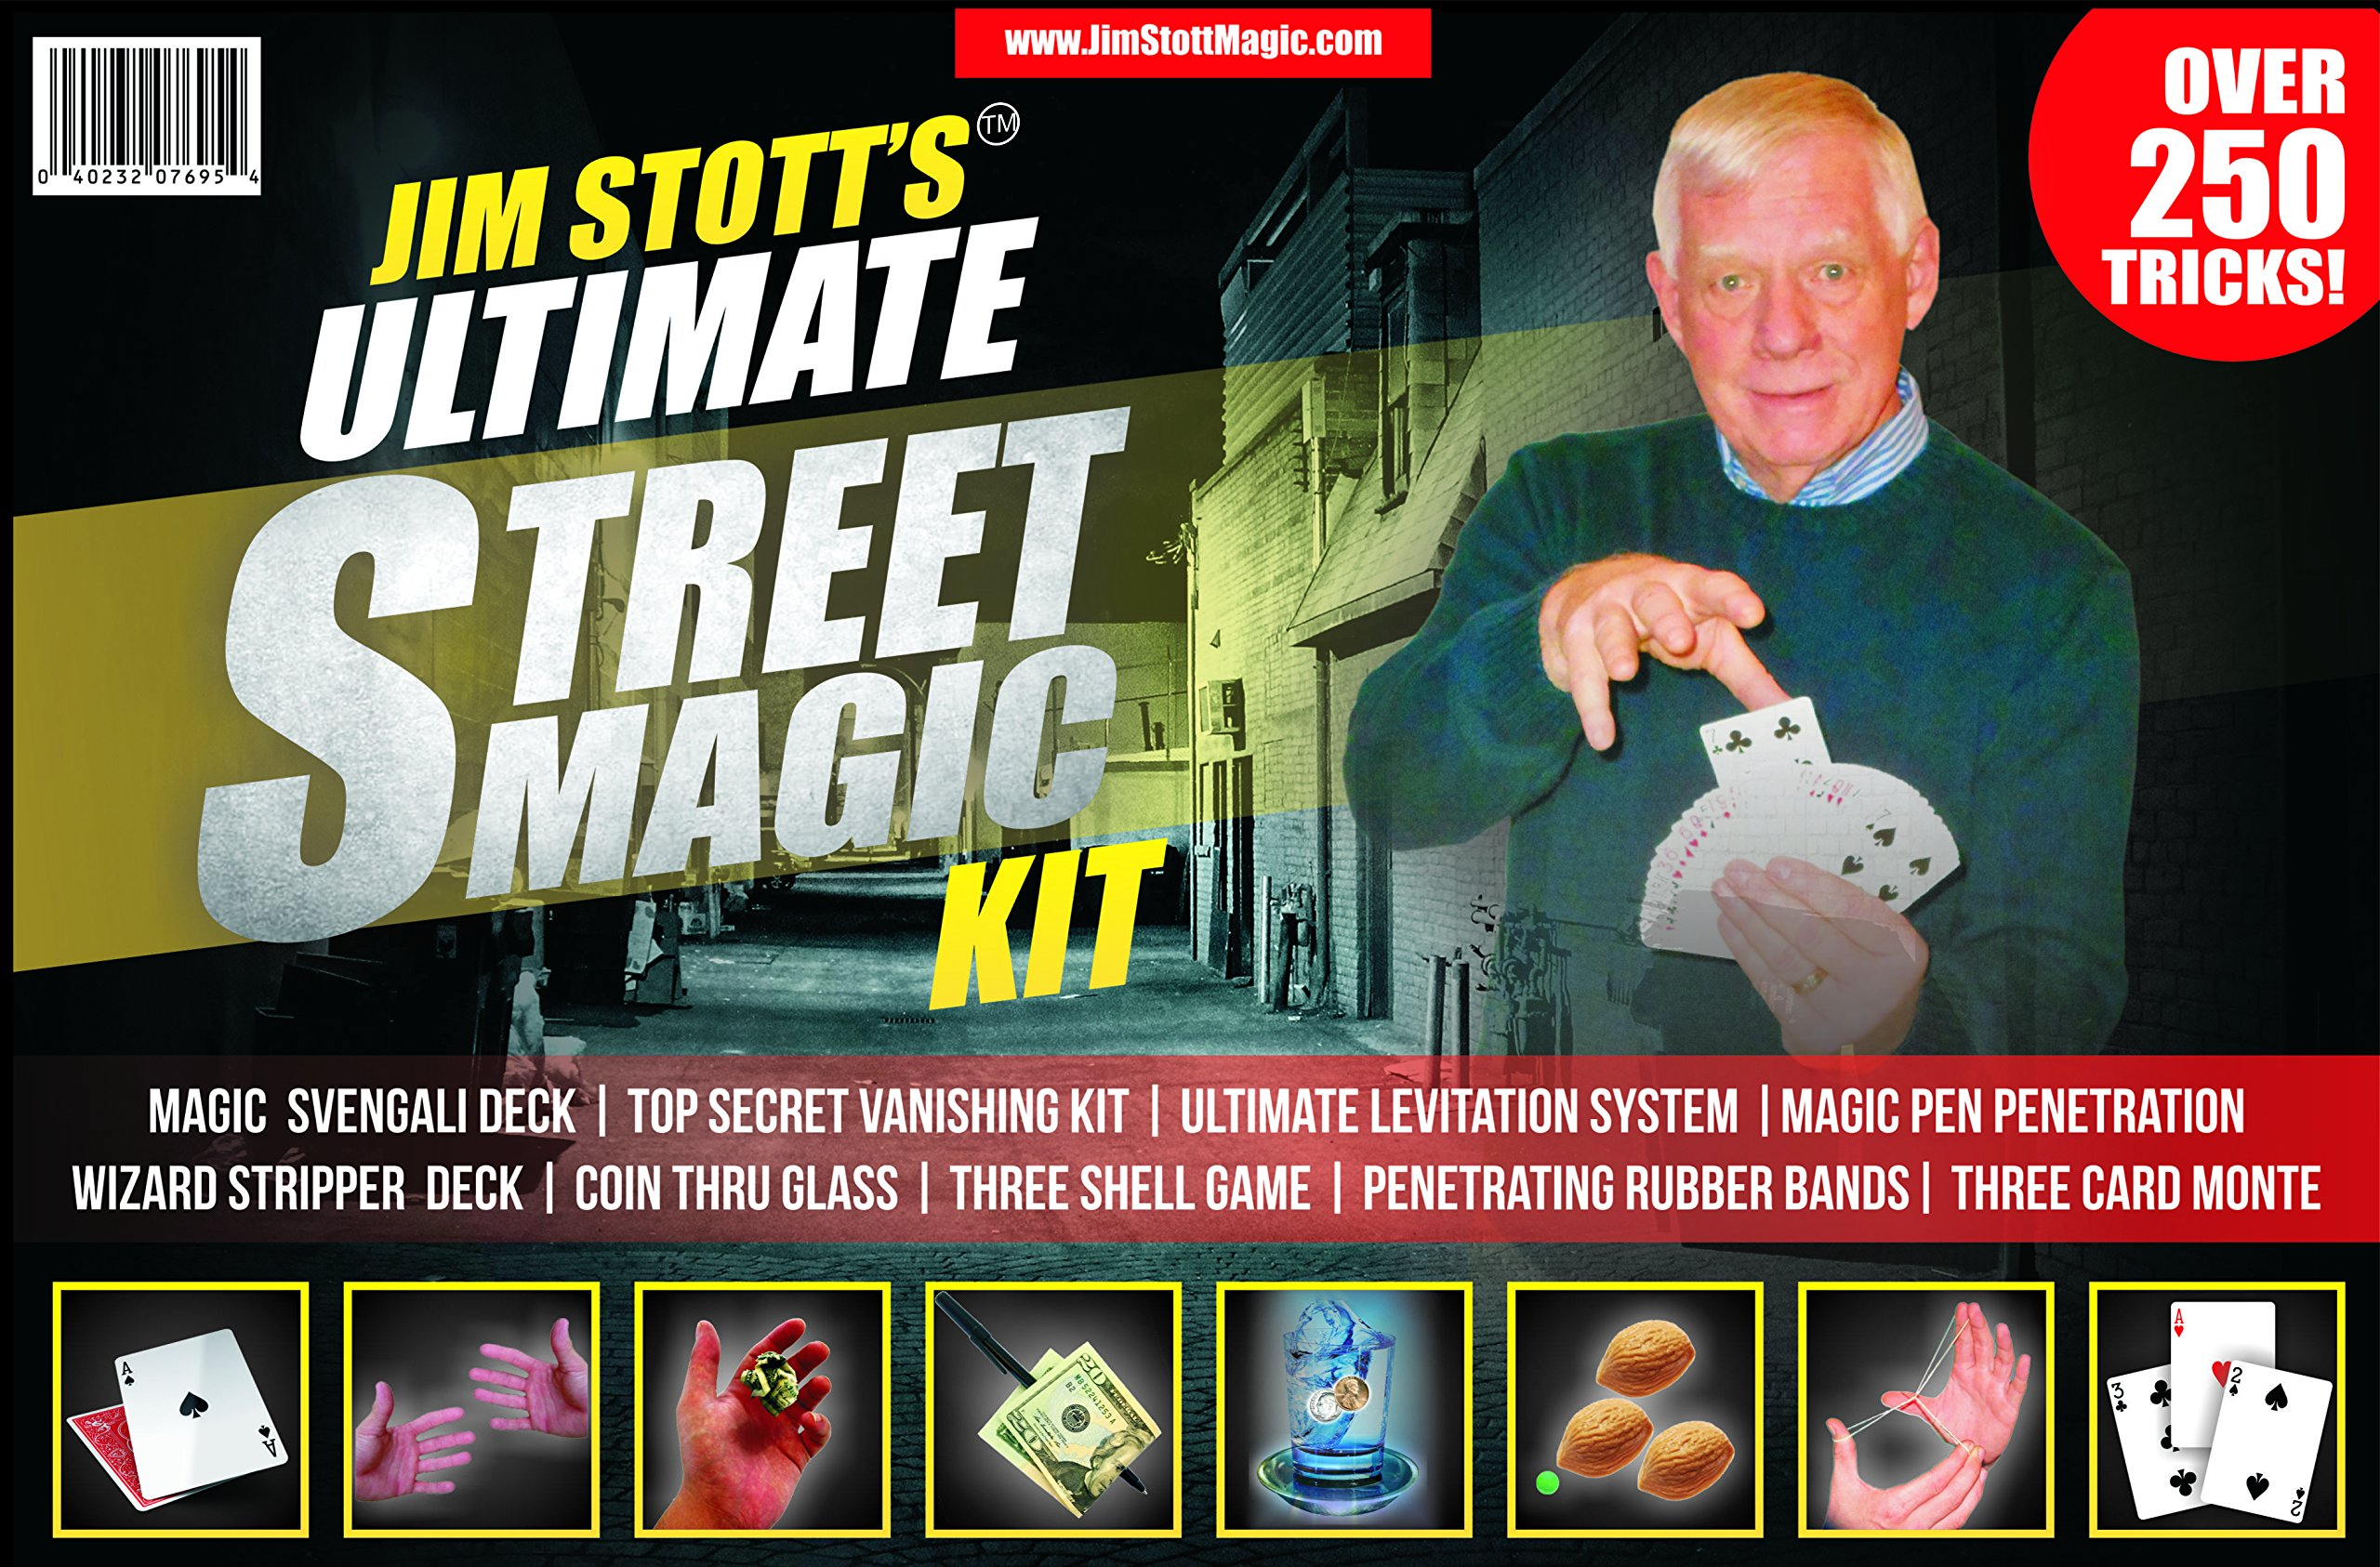 Jim Stott's 'Ultimate Street Magic Kit, Magic Tricks Set for Adults, Svengali Card Deck, The Ultimate Levitation System, Secret Vanishing Device, Penetrating Rubber Bands, Coin Thru Glass, and More by Jim Stott Magic